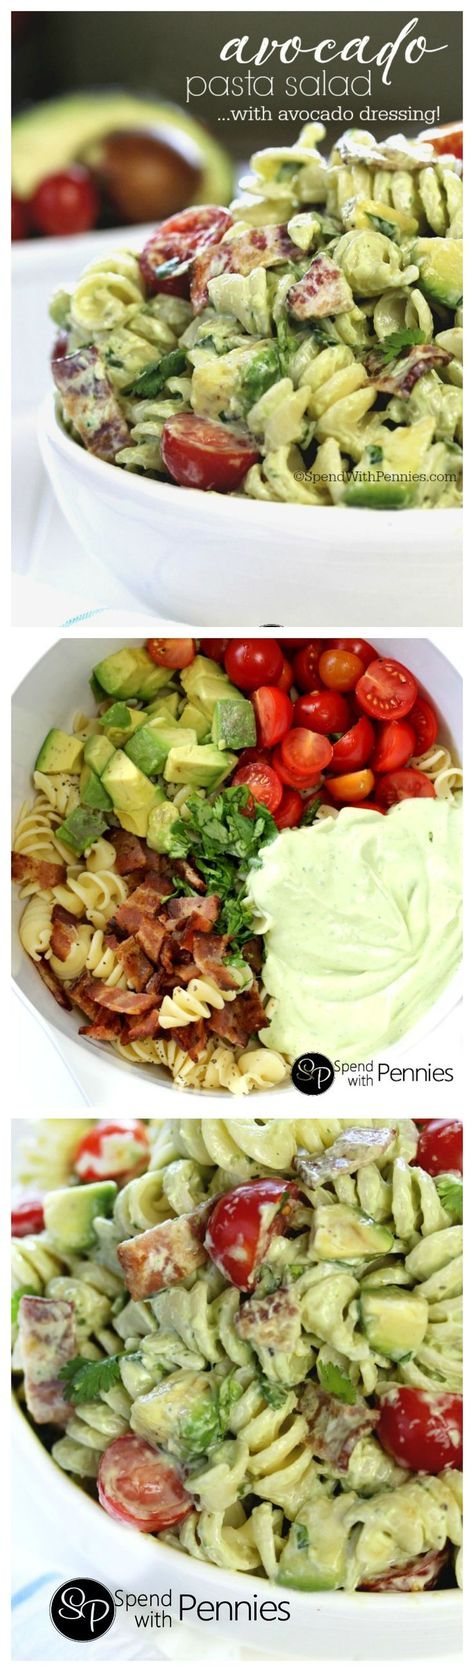 Cold pasta salads are the perfect & satisfying quick dinner or lunch! This delicious pasta salad recipe is loaded with avocados, crispy bacon & juicy cherry tomatoes tossed in a homemade avocado dressing